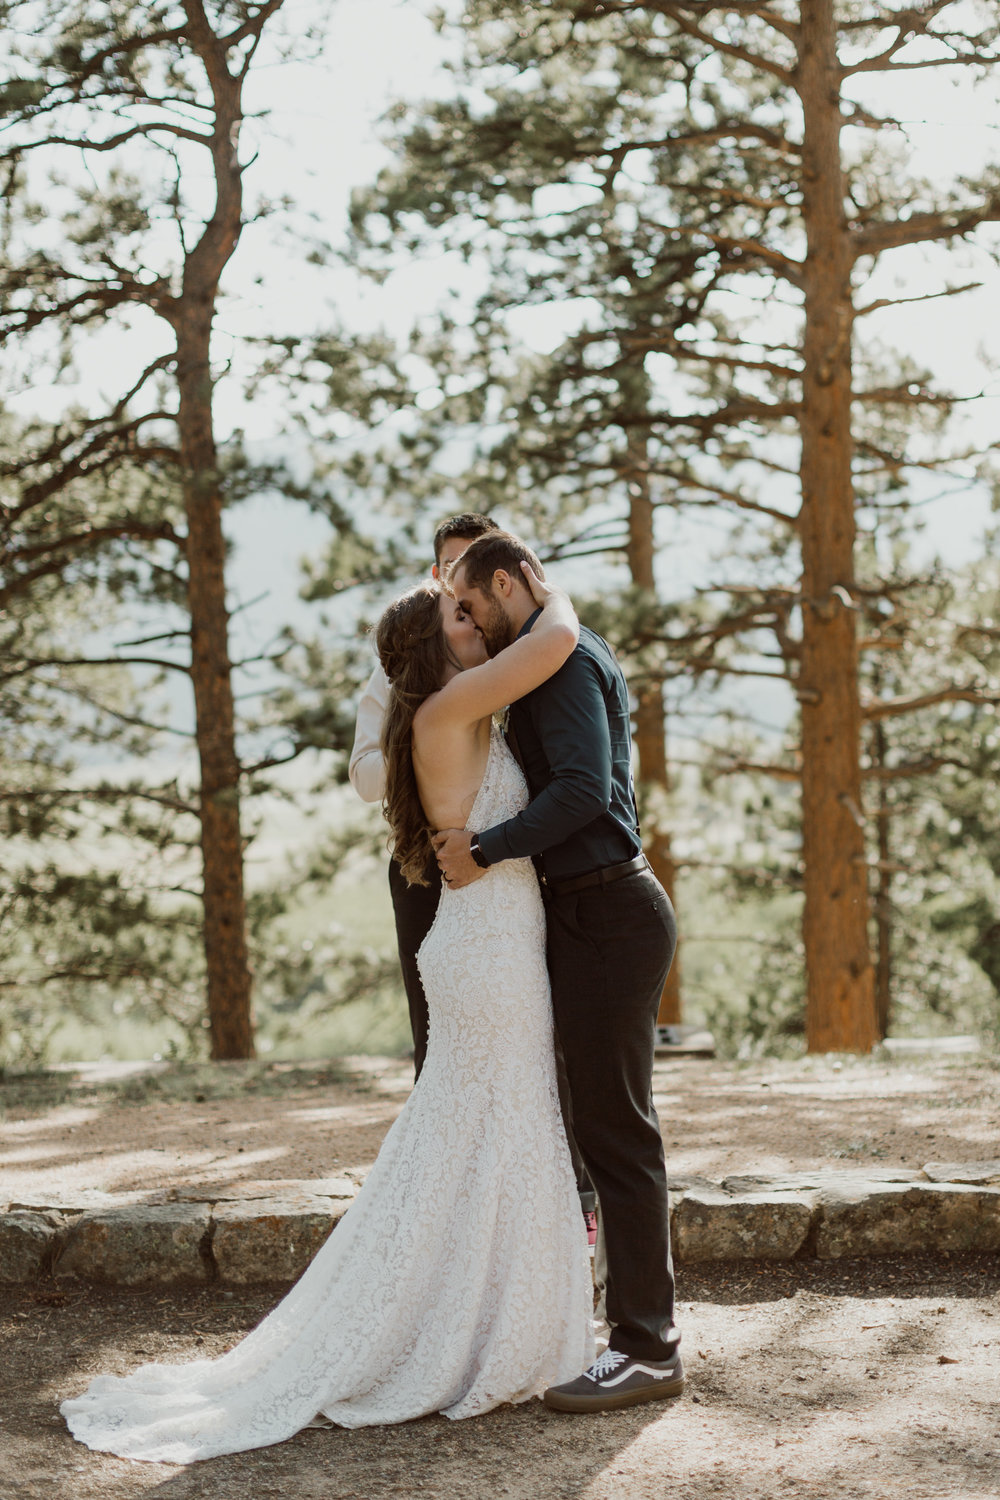 rocky-mountain-national-park-intimate-wedding-14.jpg